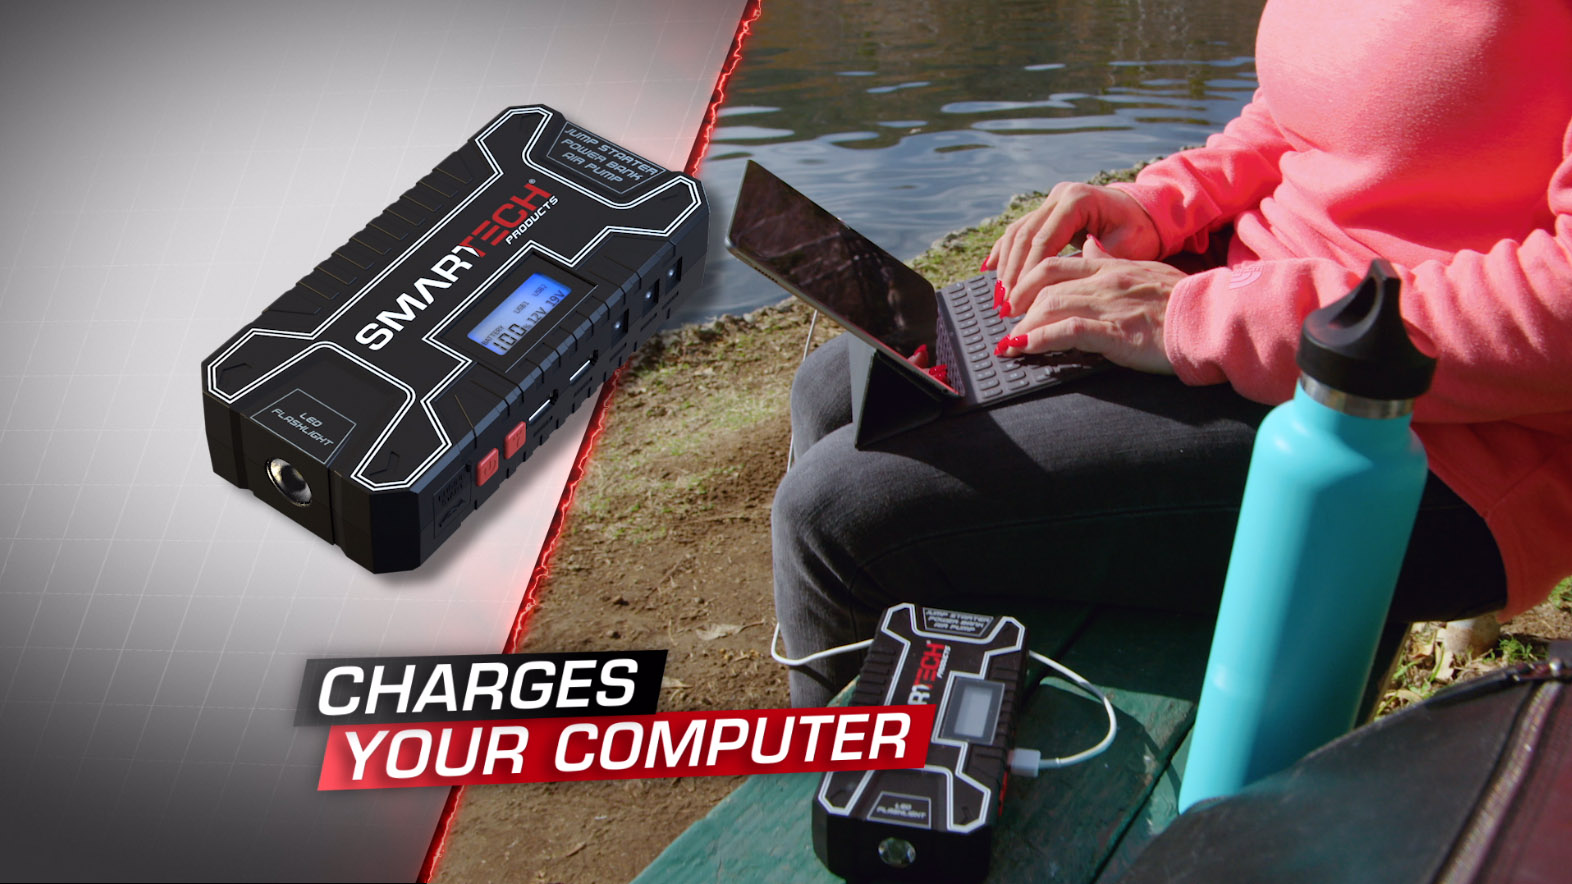 Smartech TECH-5000P - Charges your computer